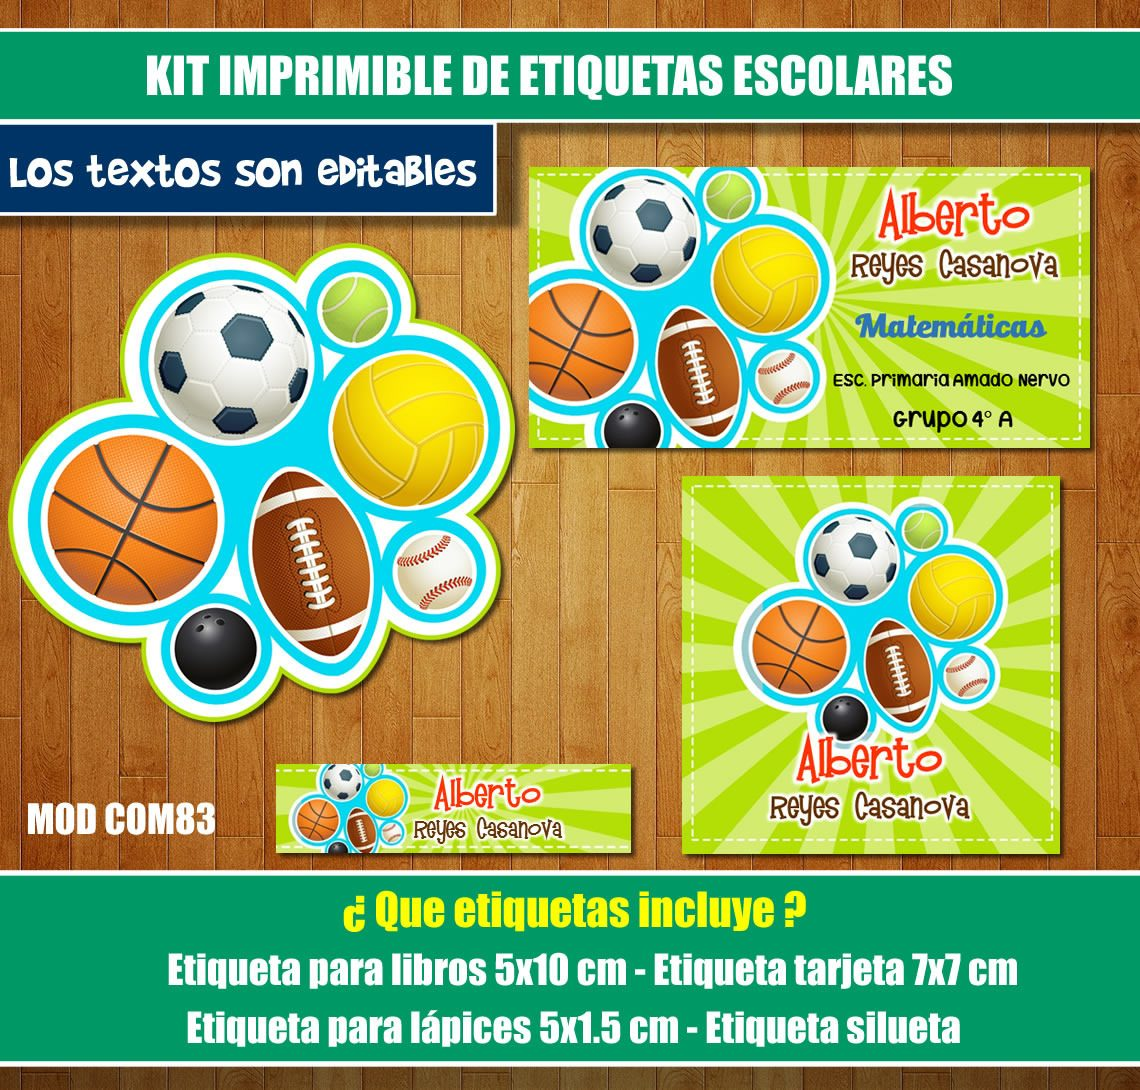 Kit Imprimible Etiquetas Escolares Deportes Sports Calcomani ...